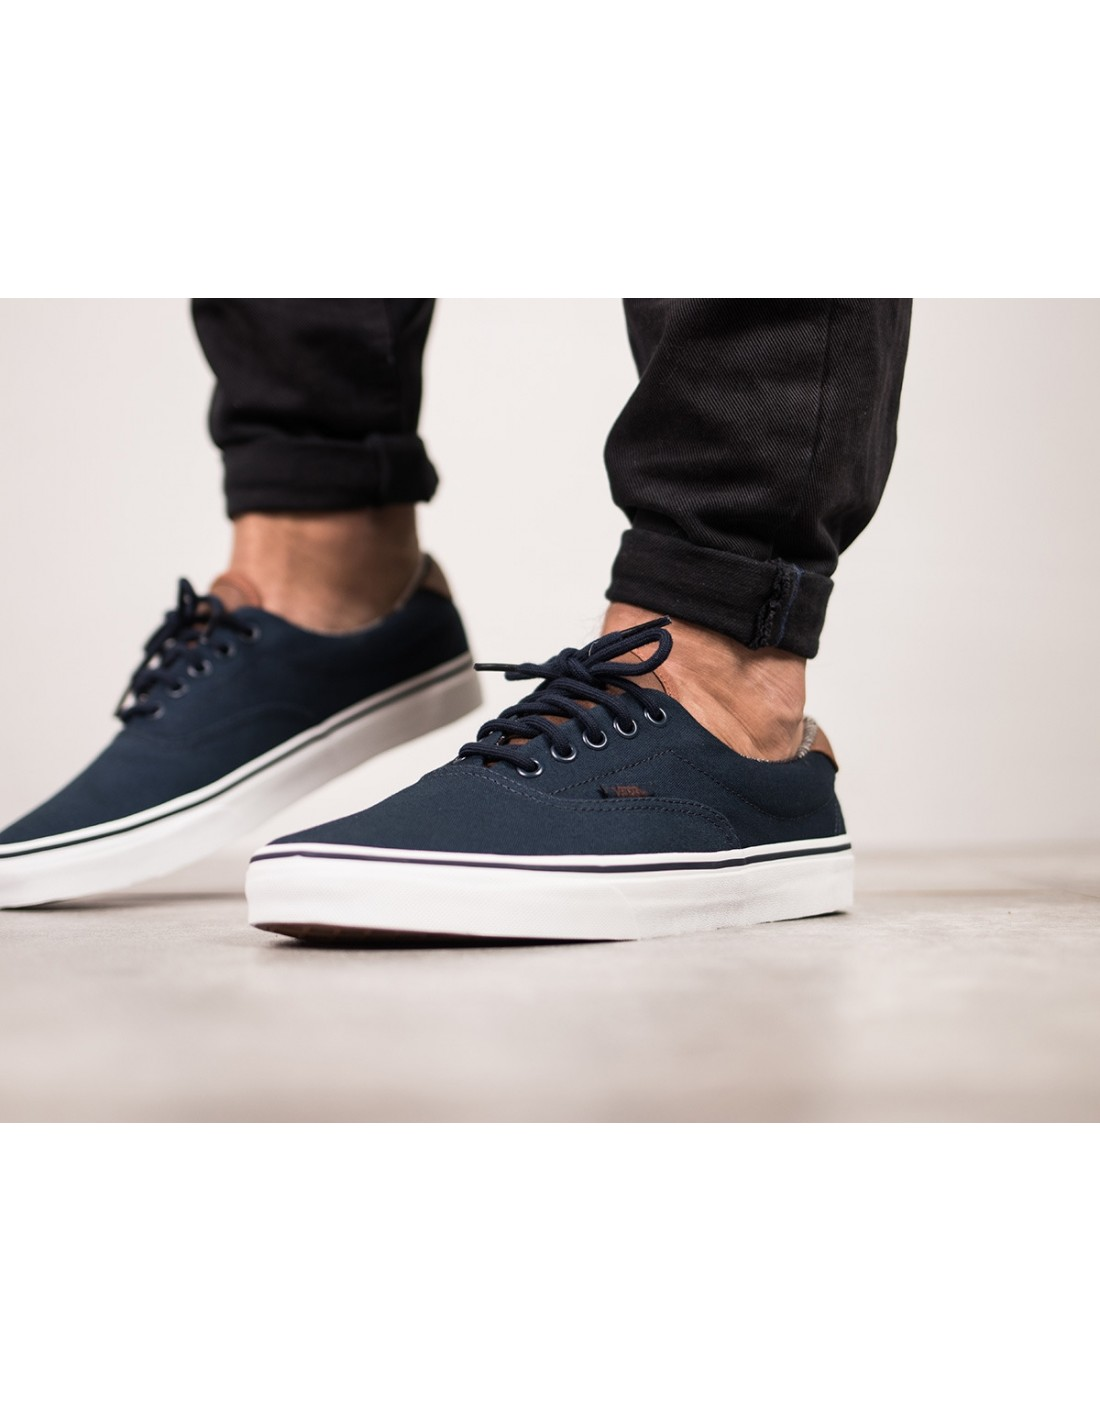 vans era 59 dress blues va38fsmve navy. Black Bedroom Furniture Sets. Home Design Ideas